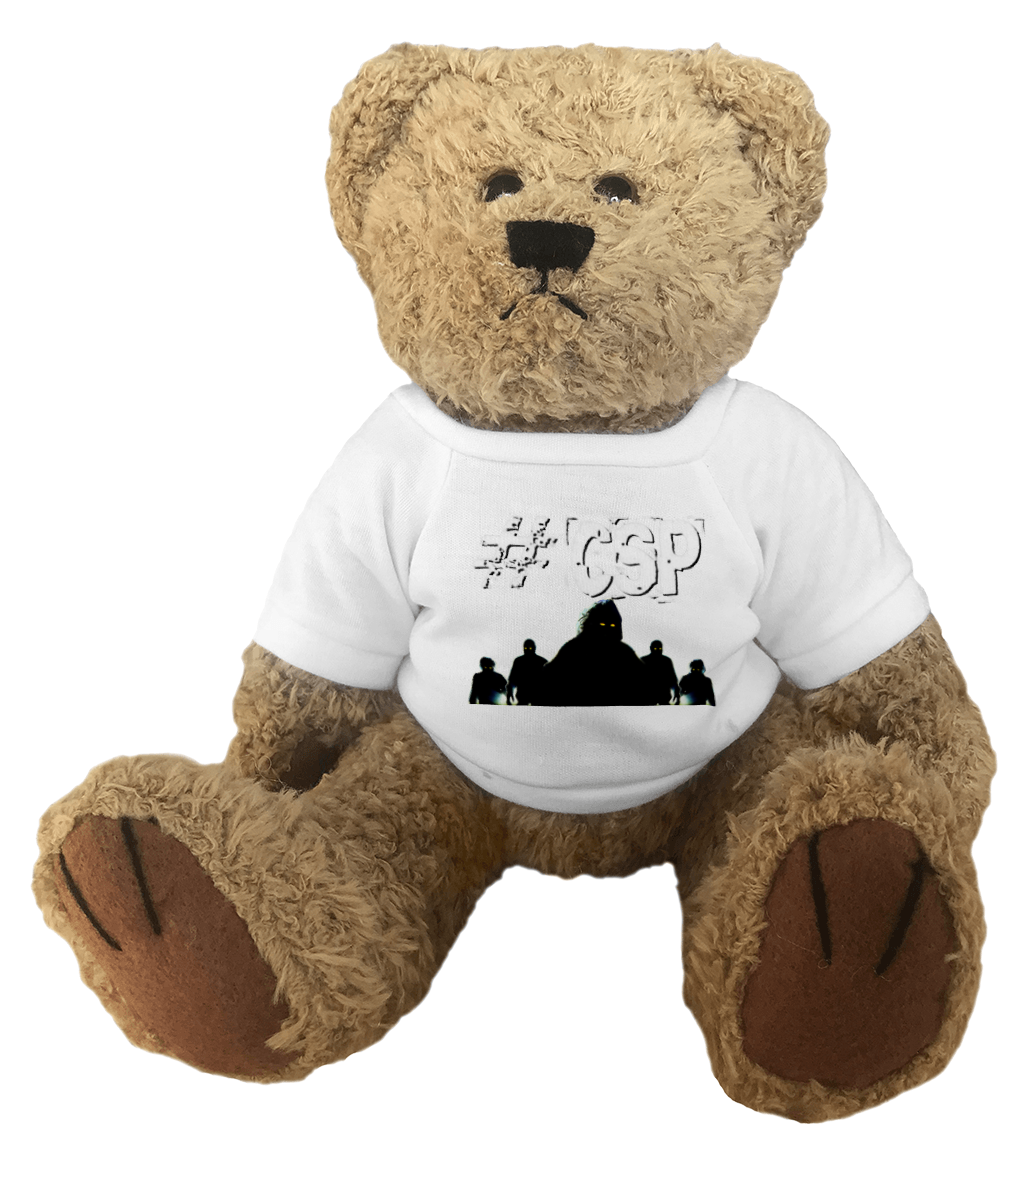 #CSP Ghost Silhouette Teddy Bear - Spooked Clothing